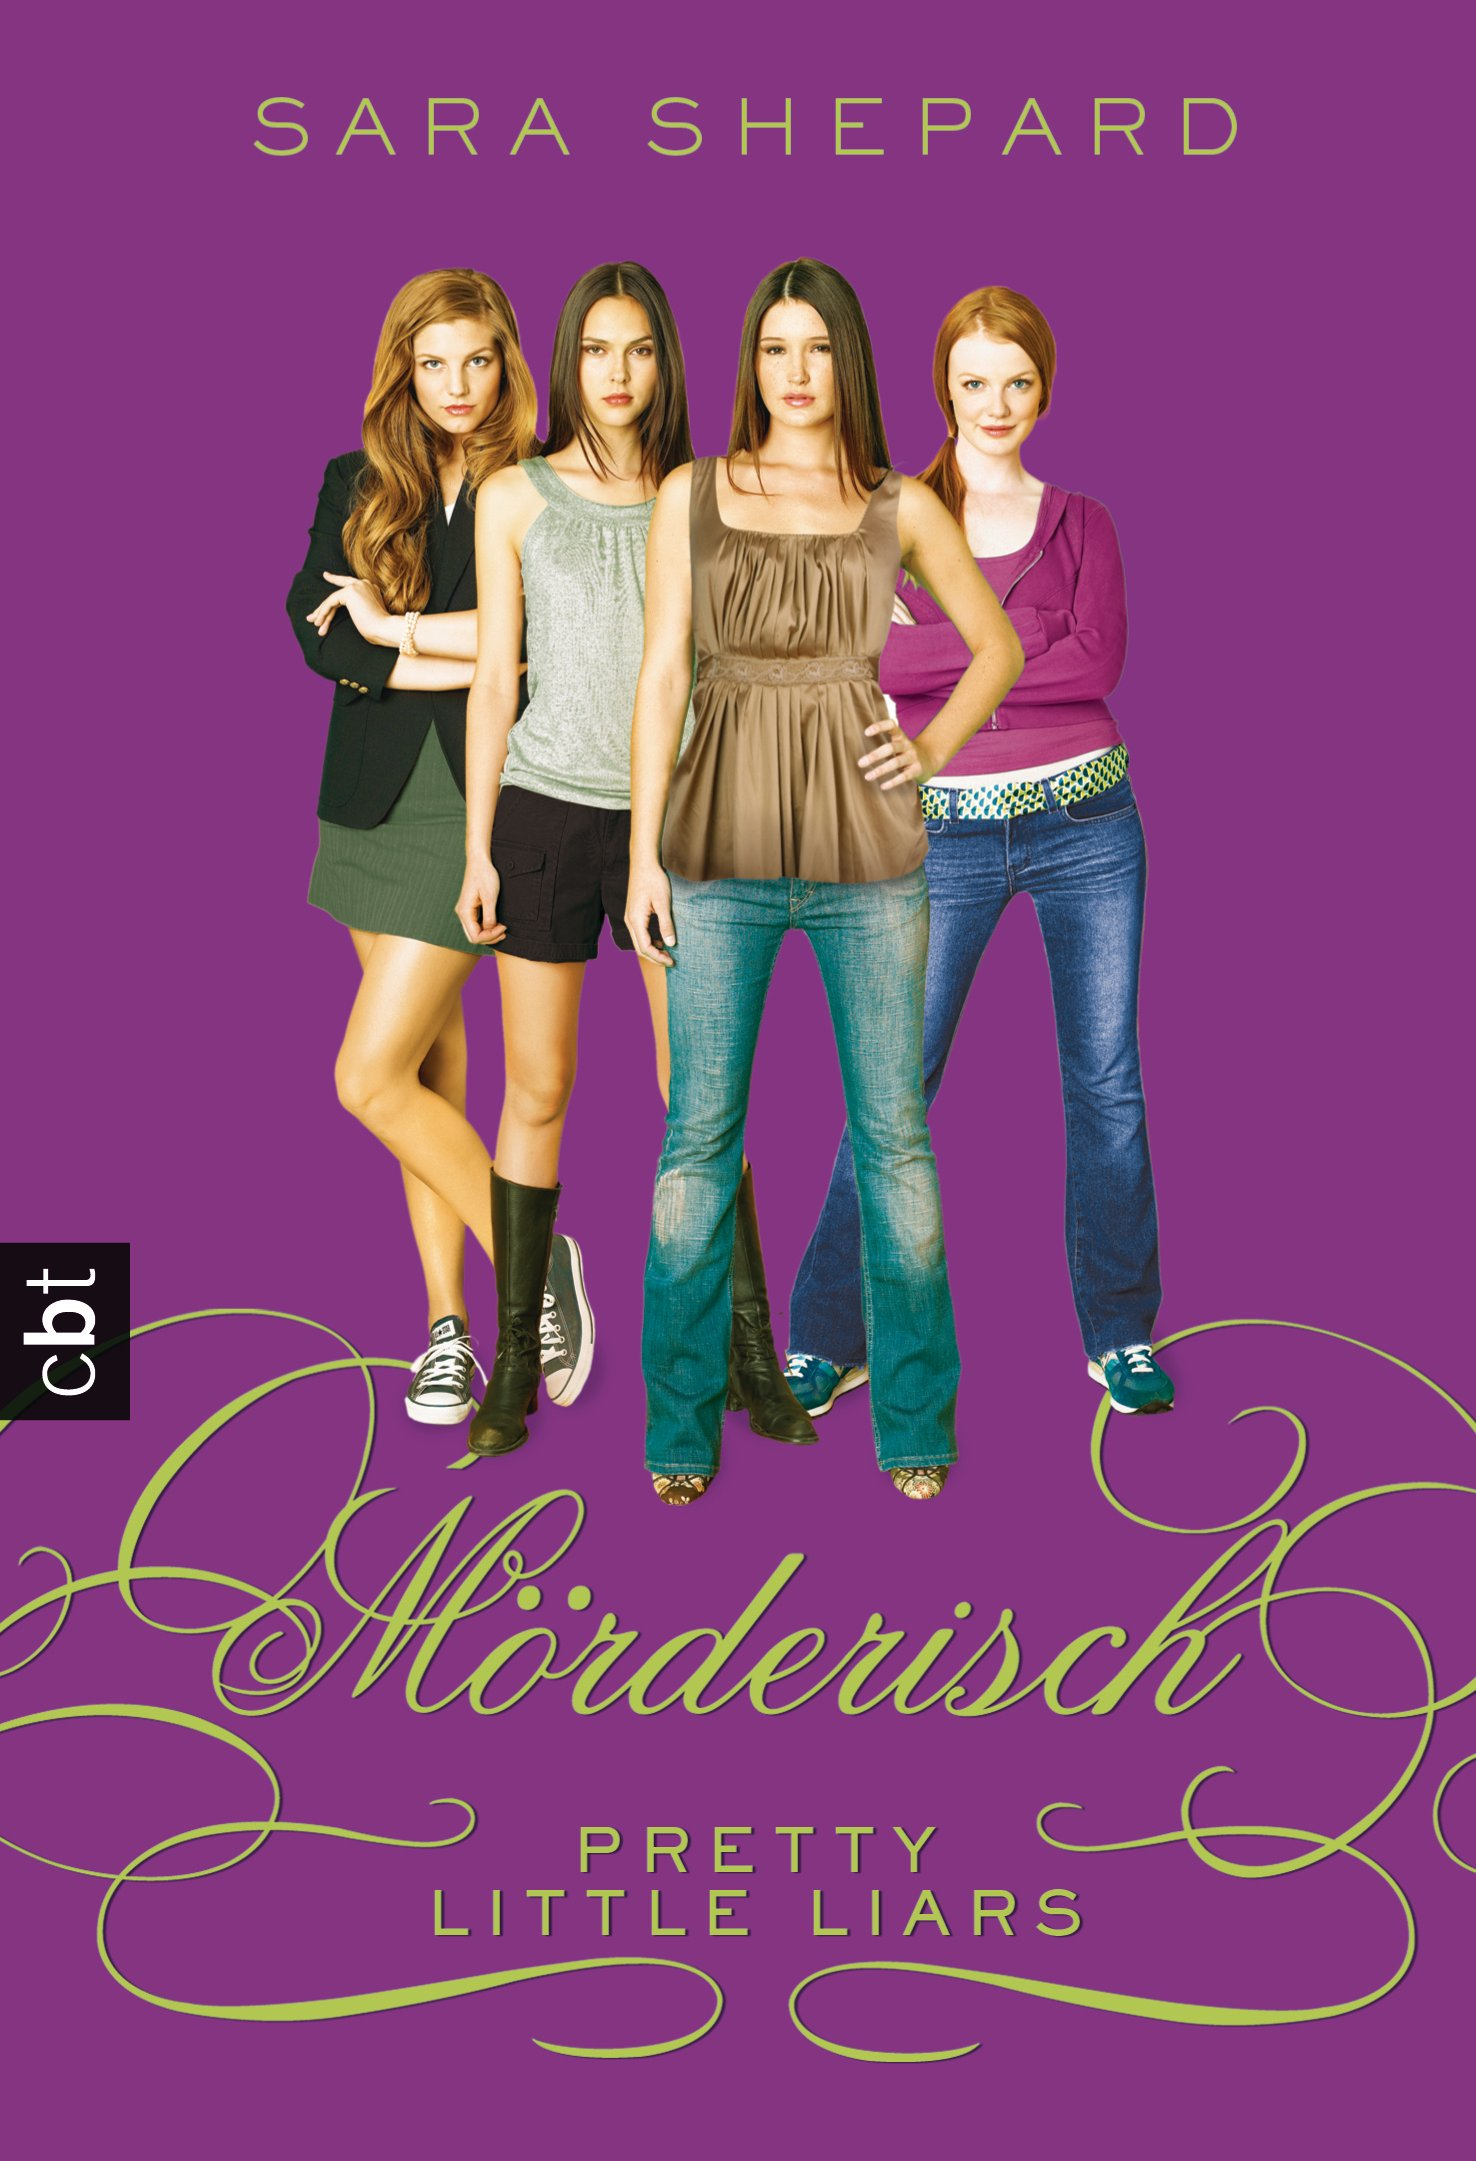 Pretty Little Liars - Mörderisch By: Sara Shepard